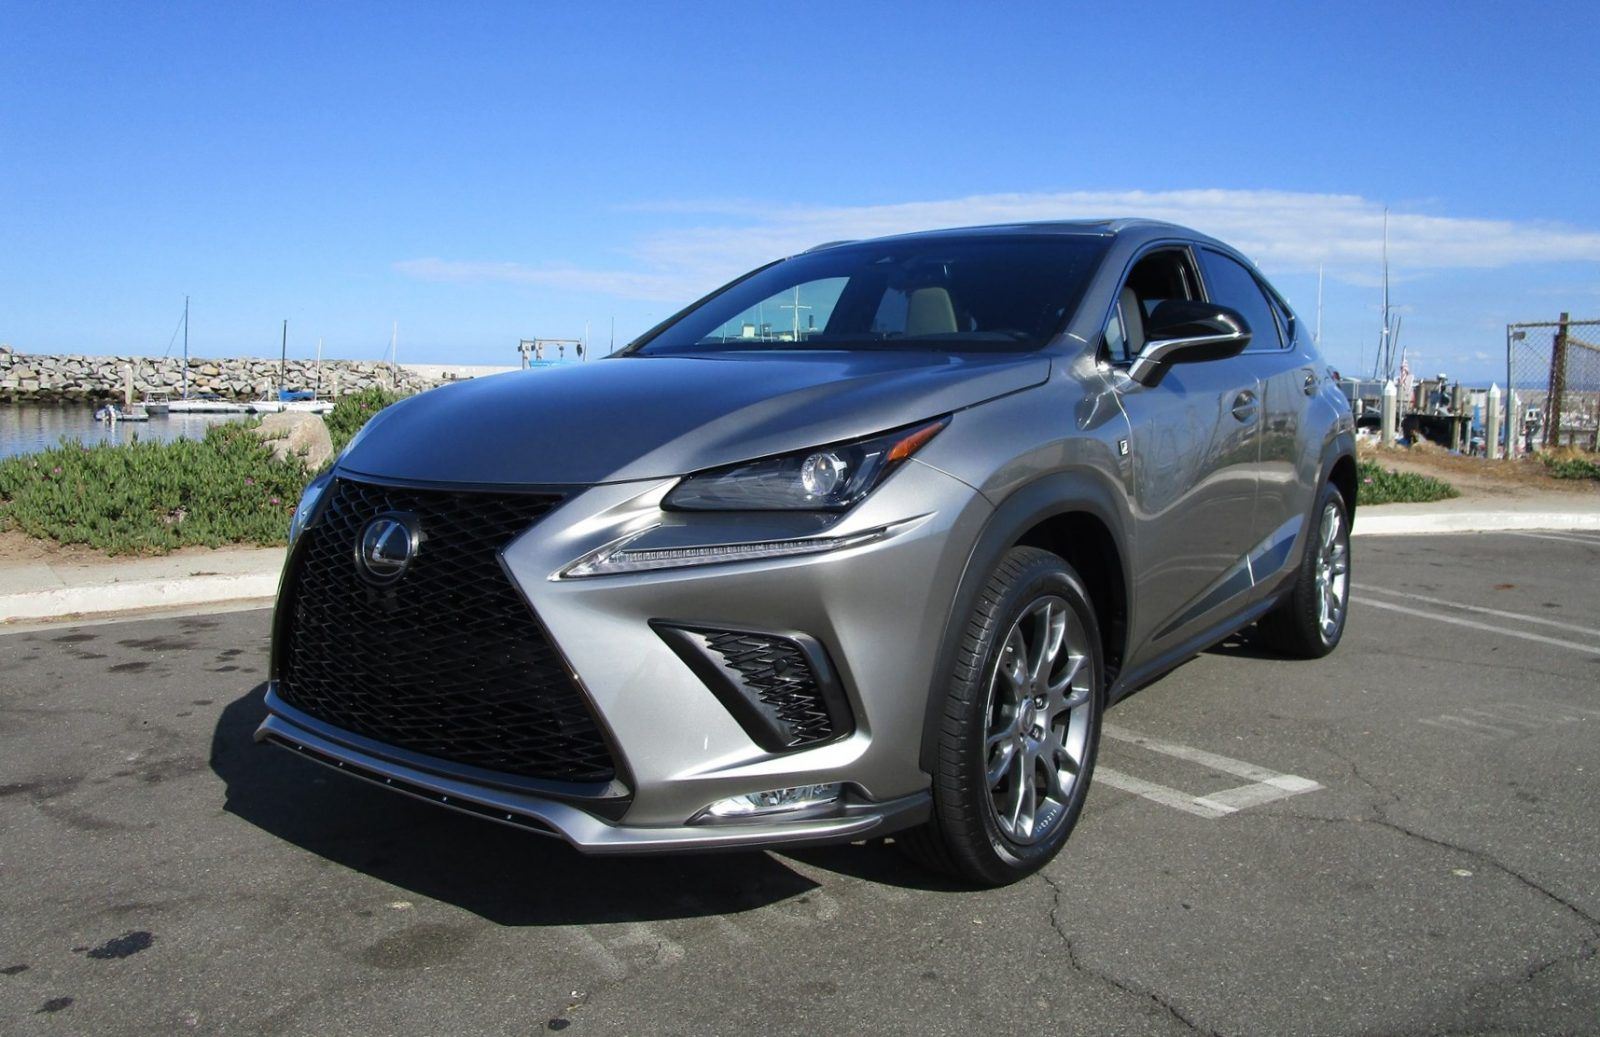 2019 Lexus Nx300 F Sport Review By Ben Lewis Car Shopping Car Revs Daily Com Lexus Sports Cars For Sale Used Lexus